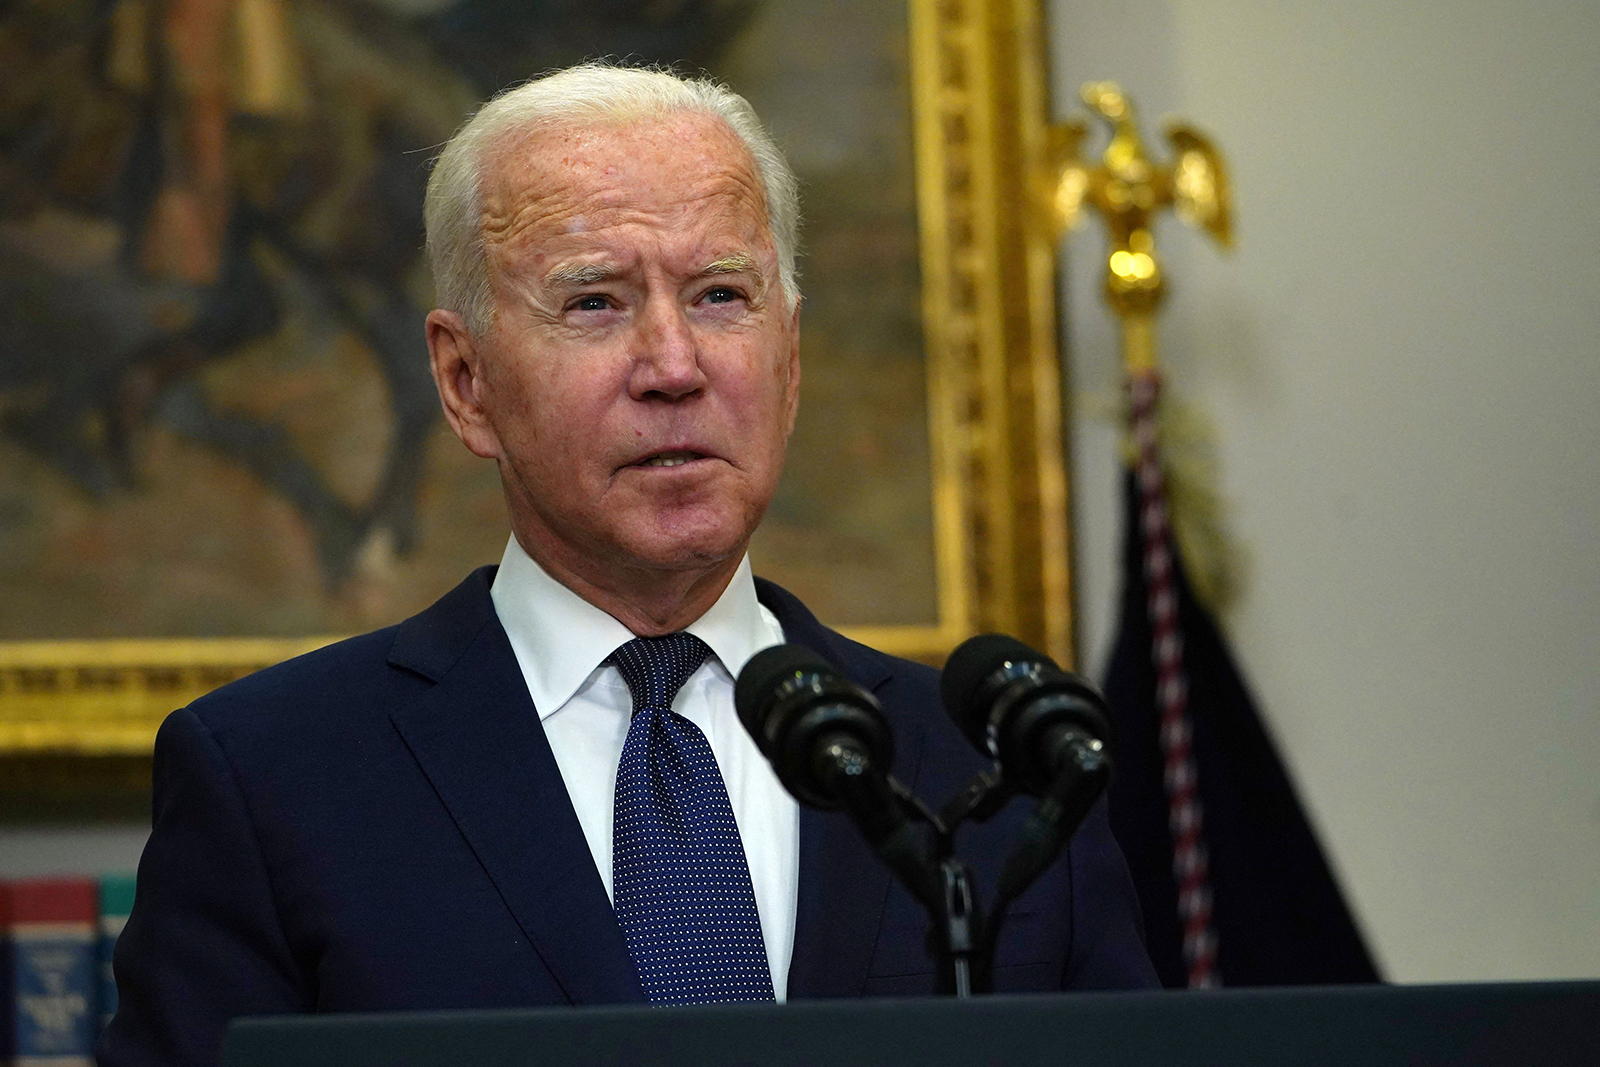 US President Joe Biden speaks during an update on the situation in Afghanistan and the effects of Tropical Storm Henri in the Roosevelt Room of the White House in Washington, DC on August 22, 2021. (Photo by Andrew Caballero-Reynolds / AFP) (Photo by ANDREW CABALLERO-REYNOLDS/AFP via Getty Images)